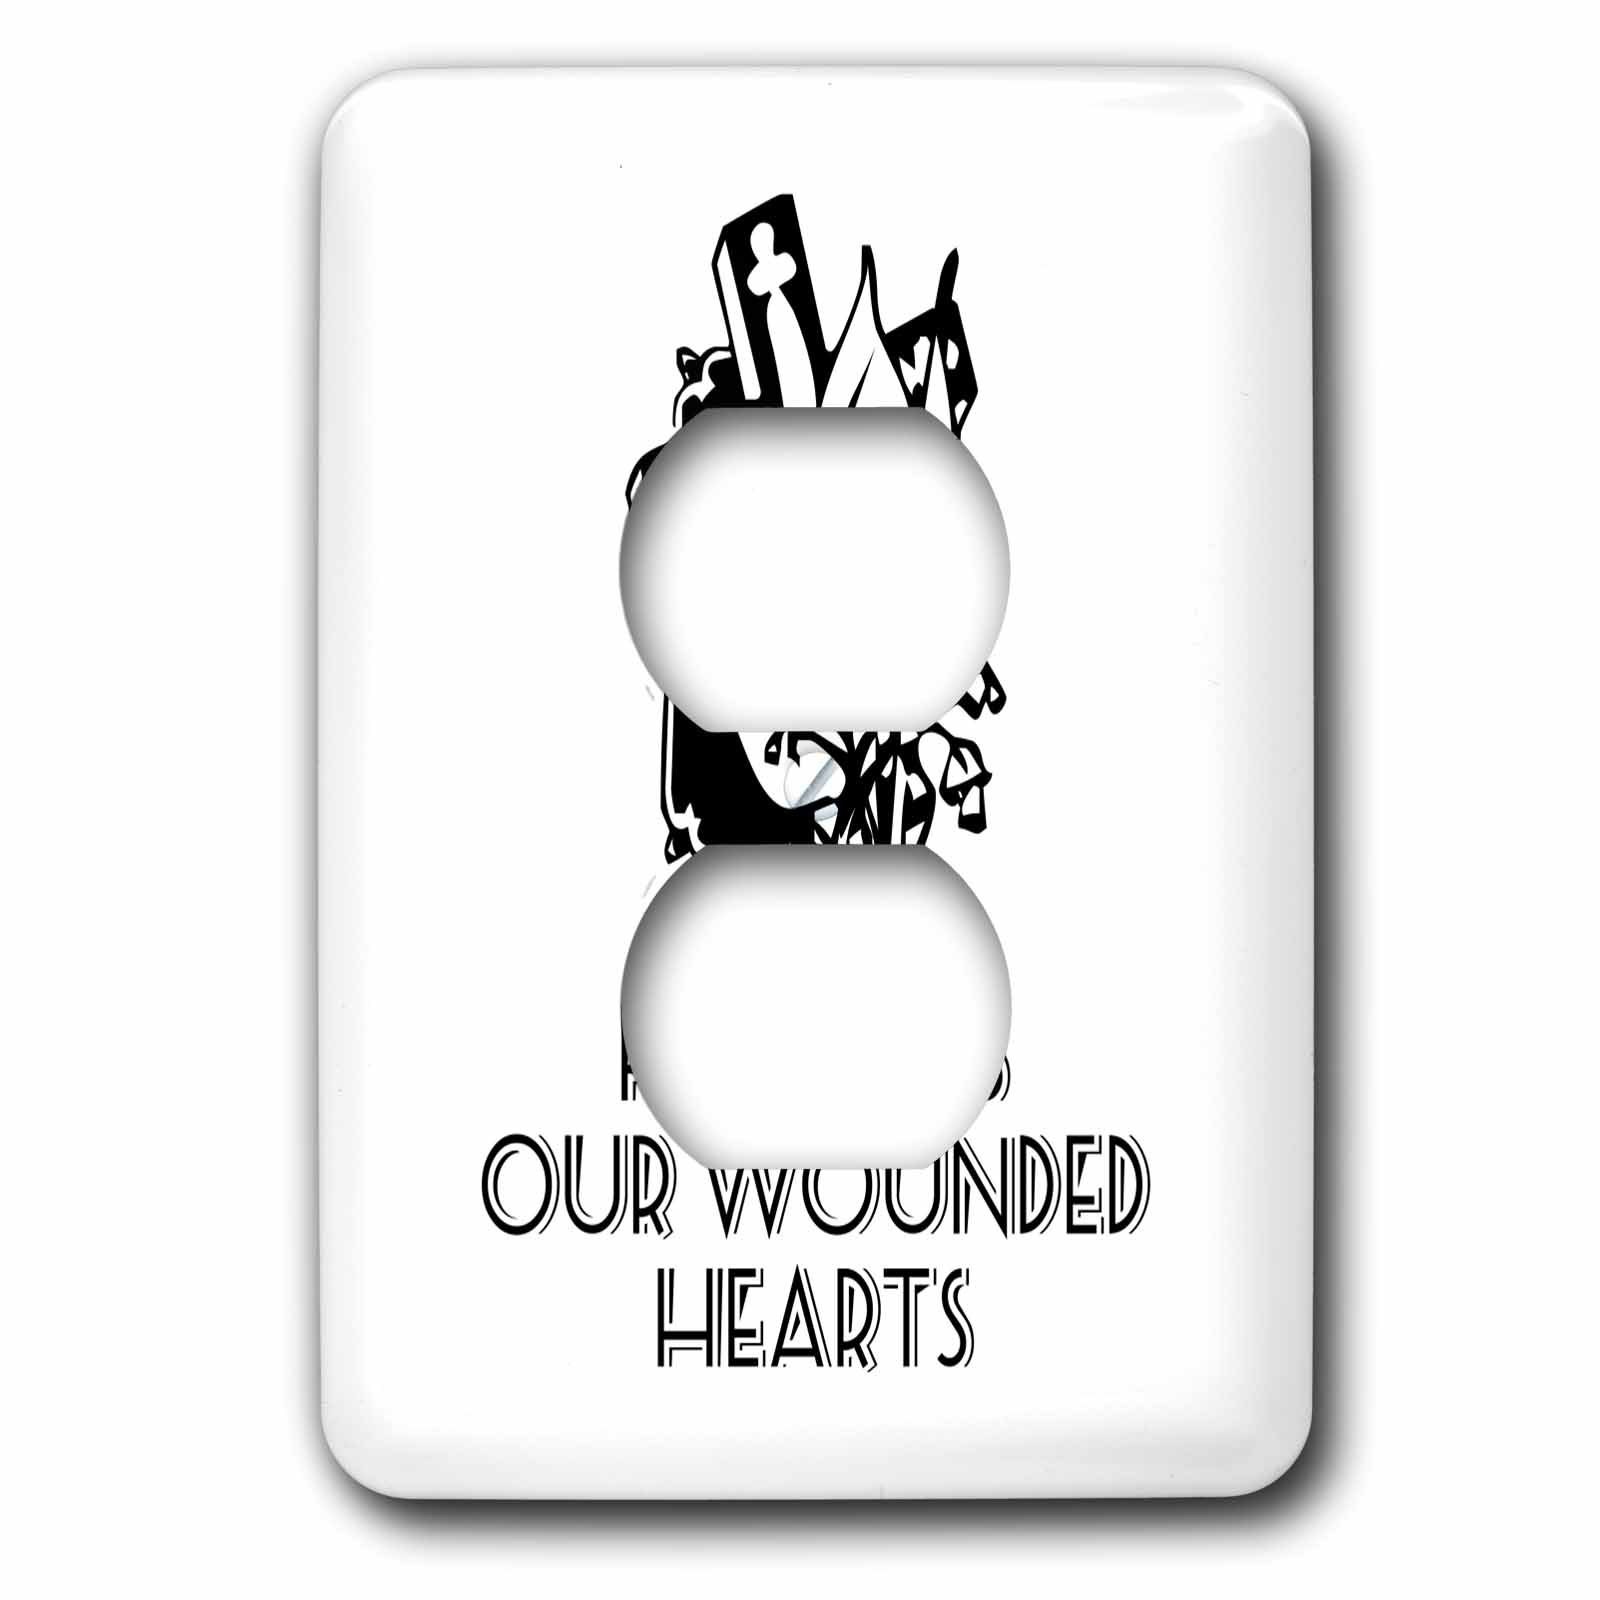 3dRose Alexis Design - Christian - Cross and flowers, the text He heals our wounded hearts on white - Light Switch Covers - 2 plug outlet cover (lsp_286186_6)